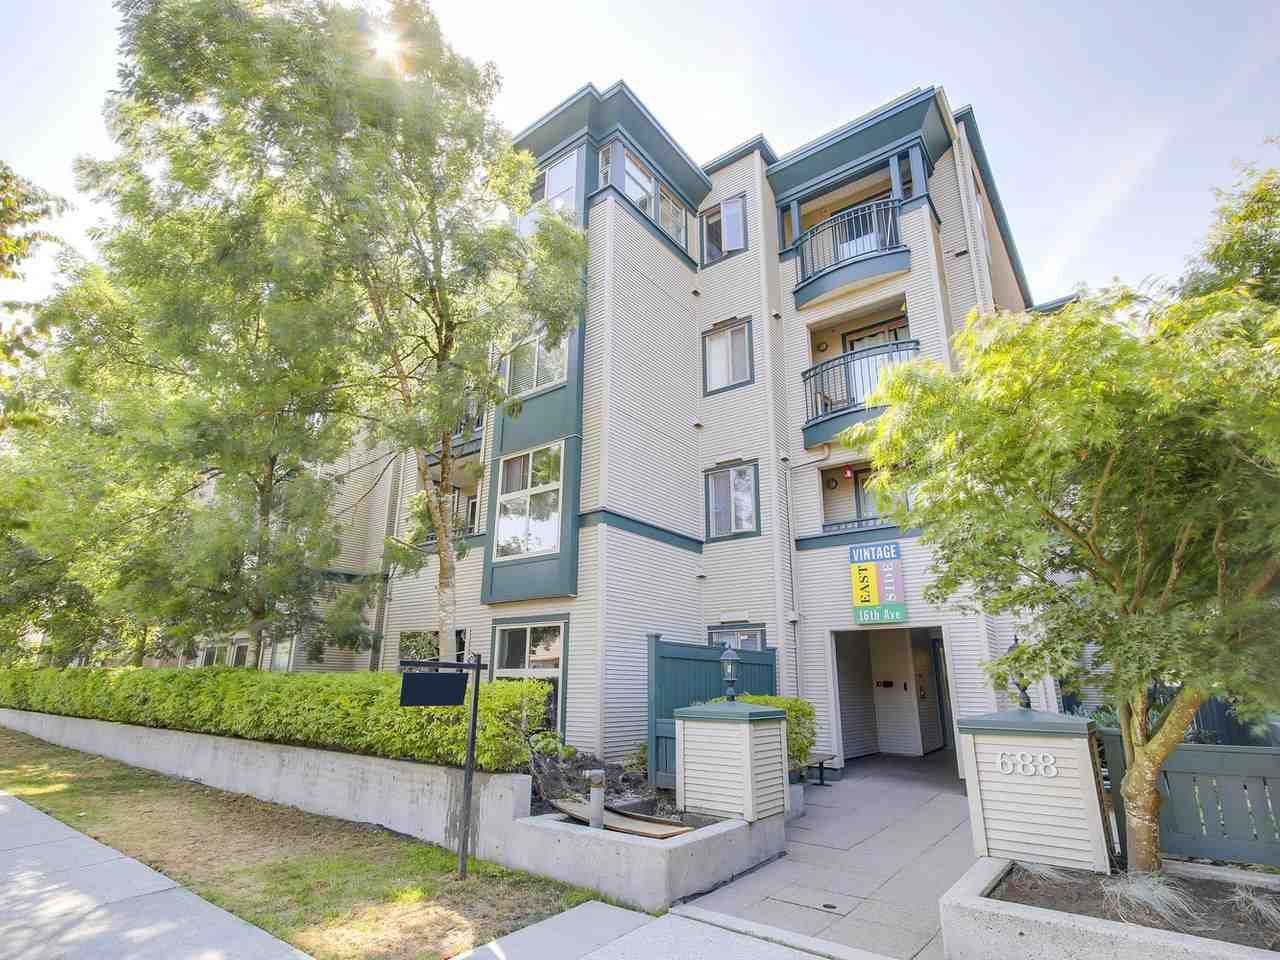 """Main Photo: 206 688 E 16TH Avenue in Vancouver: Fraser VE Condo for sale in """"VINTAGE EASTSIDE"""" (Vancouver East)  : MLS®# R2189577"""